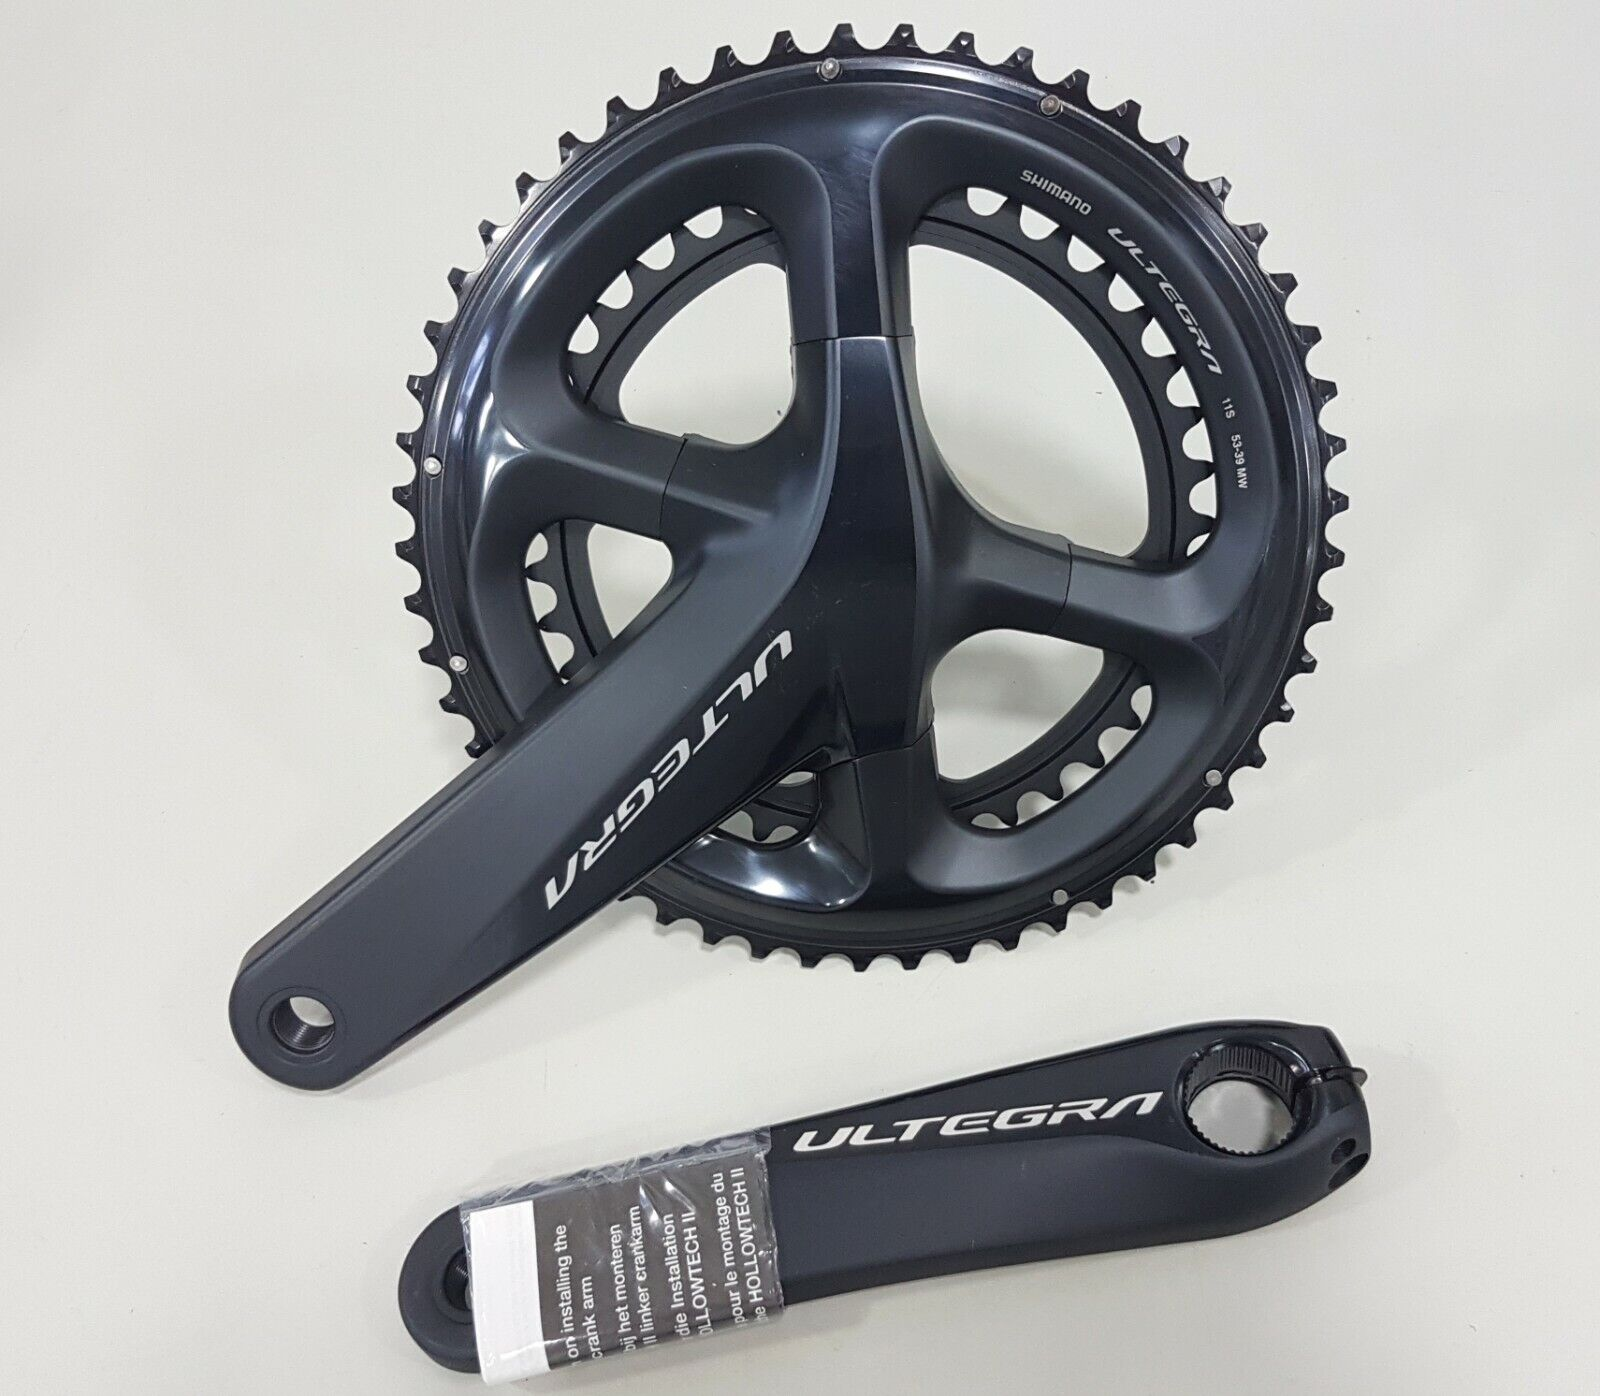 Shiuomoo Ultegra HOLLOWTECH II 2x11Speed FCR8000 R8000 Crankset 52x36T 170mm